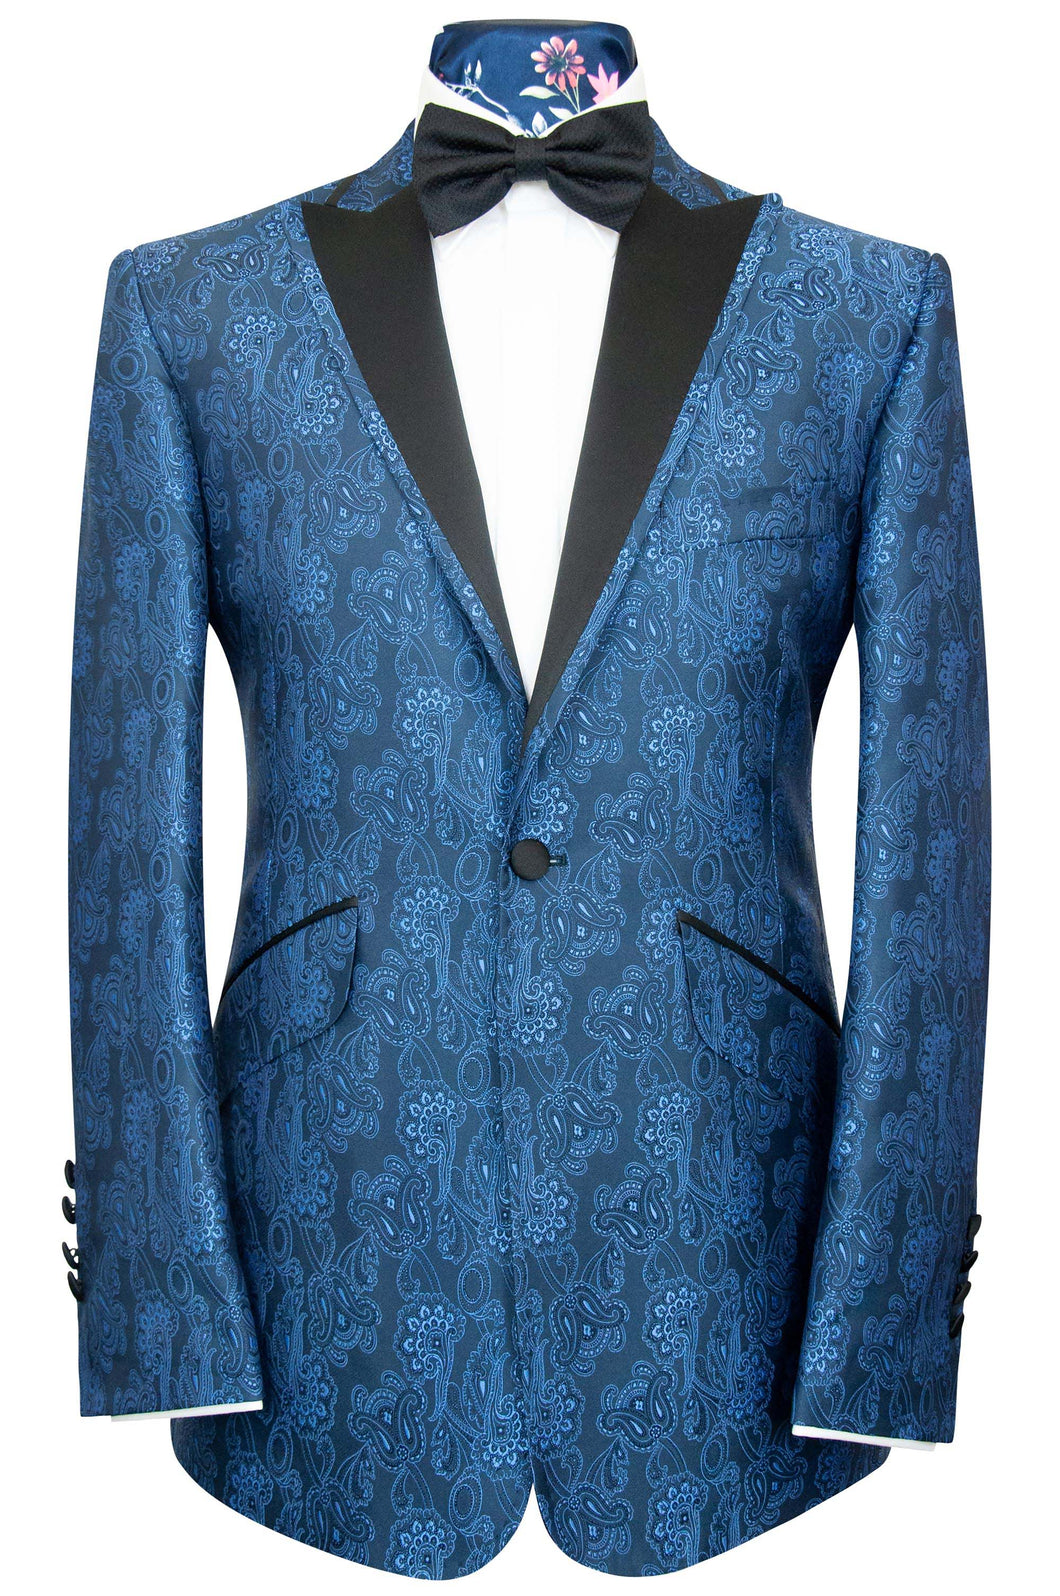 The Ackerman Classic Dinner Jacket in Cobalt Blue Floral Paisley Over Navy